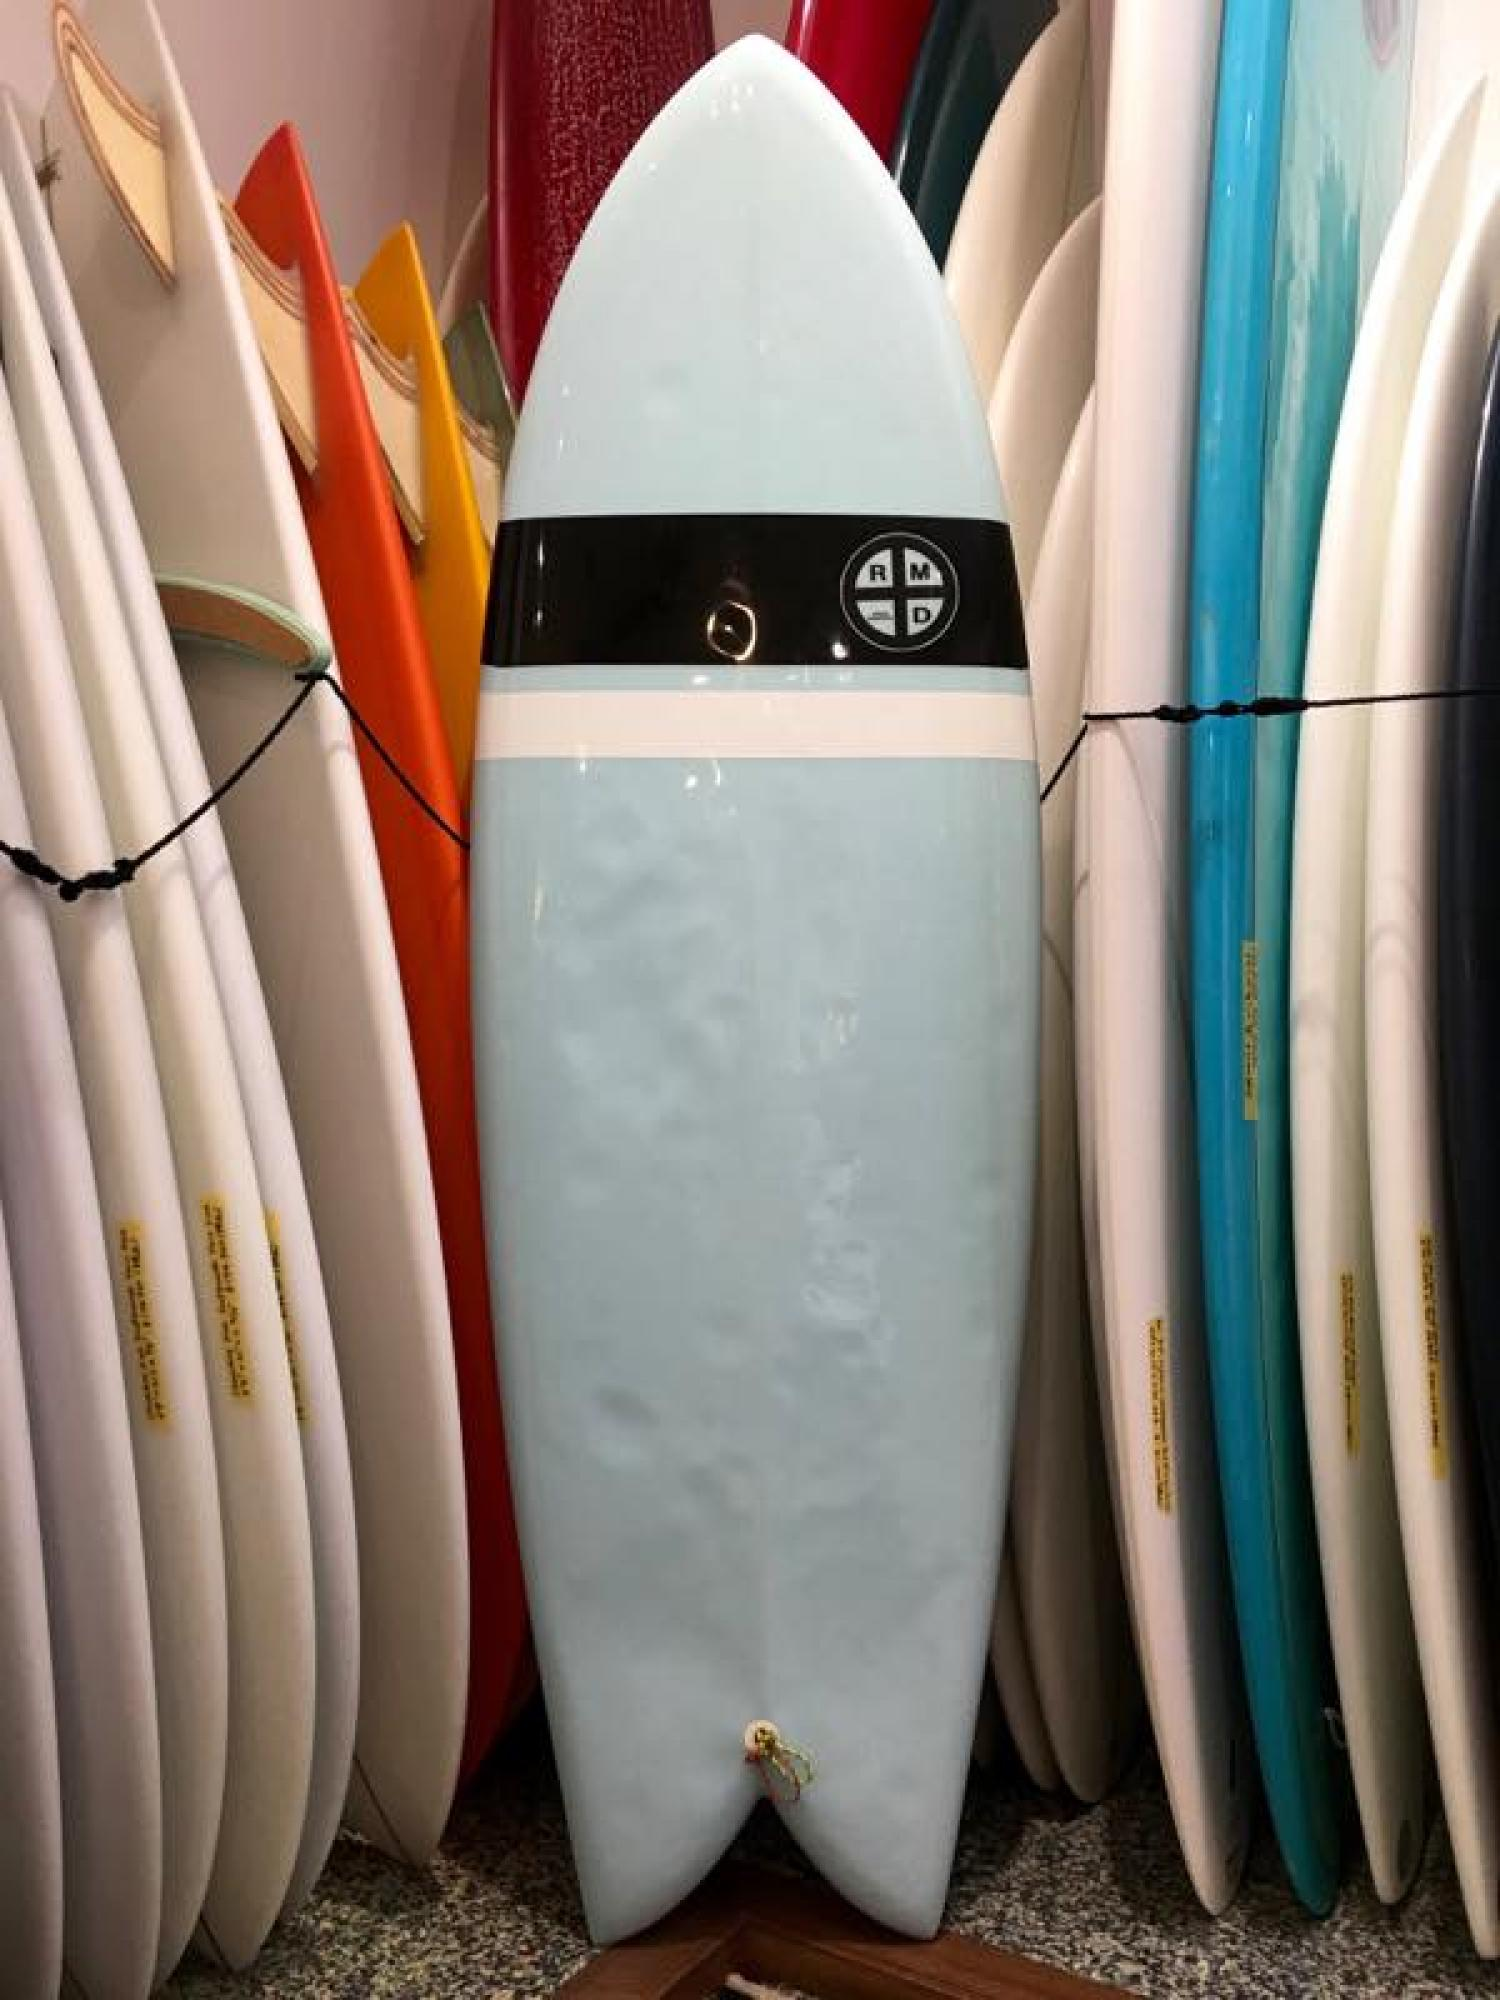 USED BOARDS (RMD SURFBOARDS 5.7 Hybrid Twin)